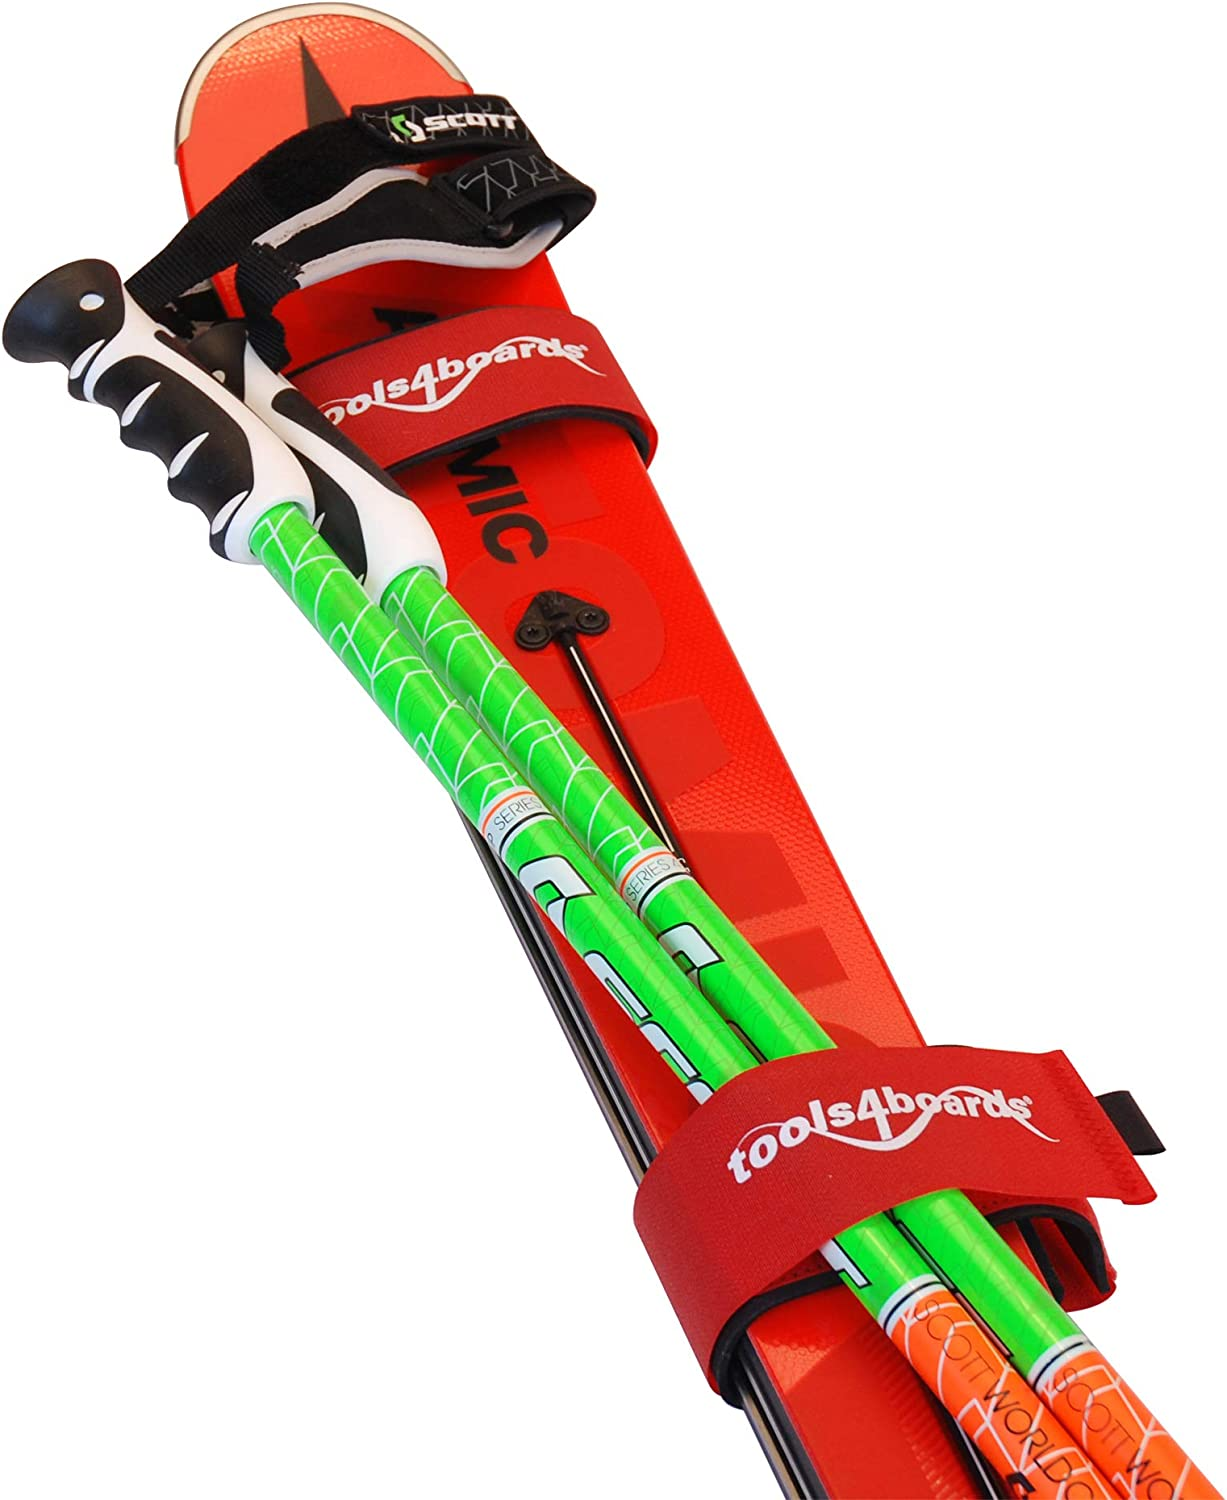 Extra Large Red 2-Piece Tools4Boards Superwide Ski Straps